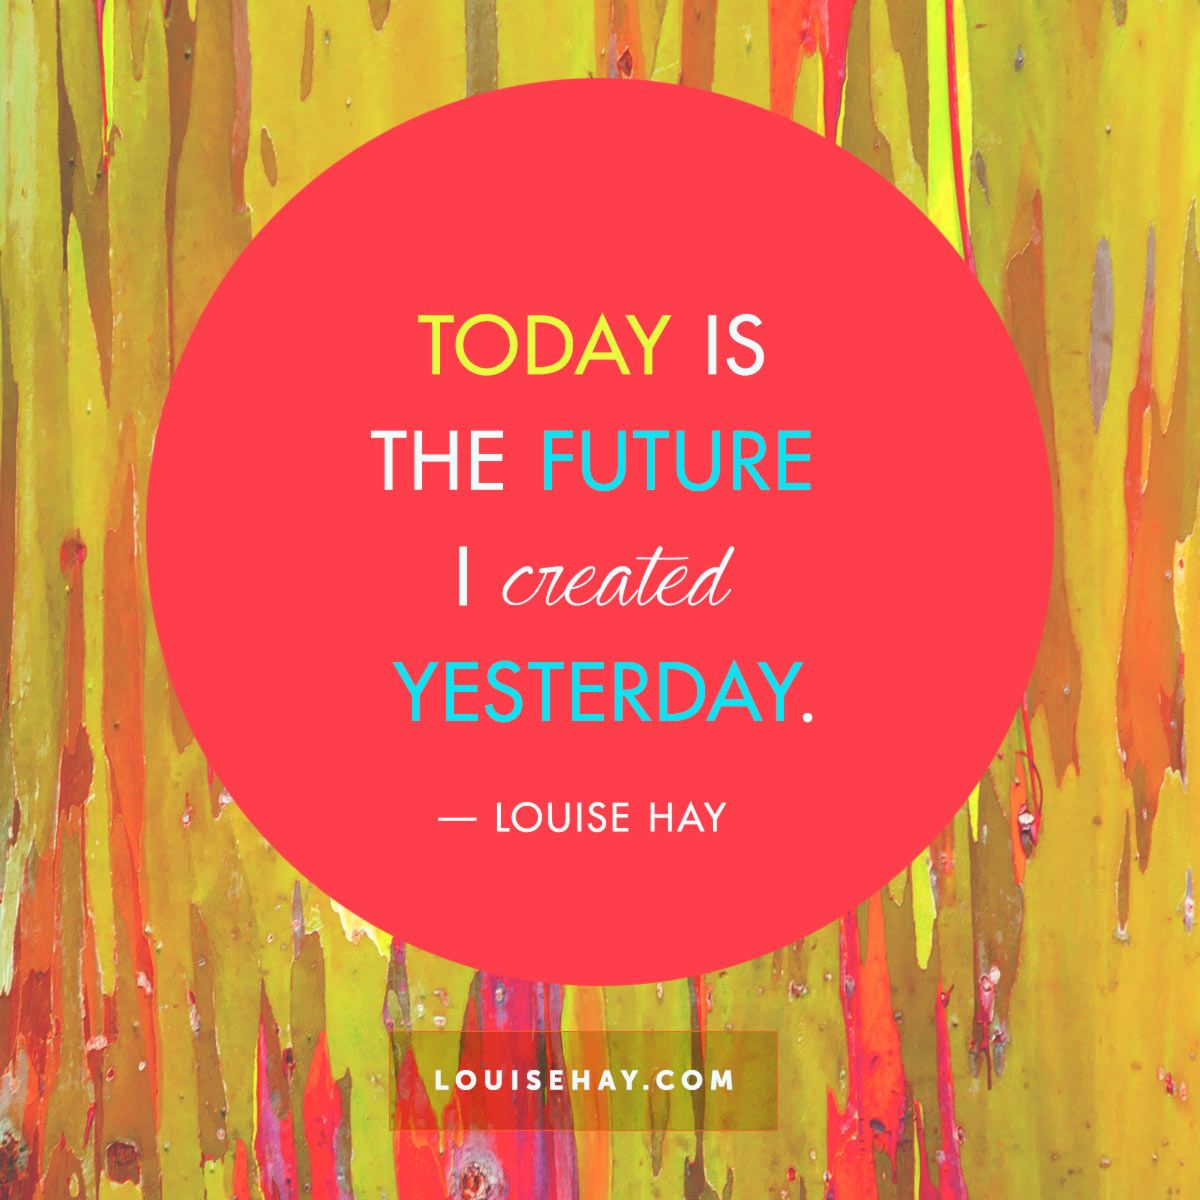 Today is the future I created yesterday.